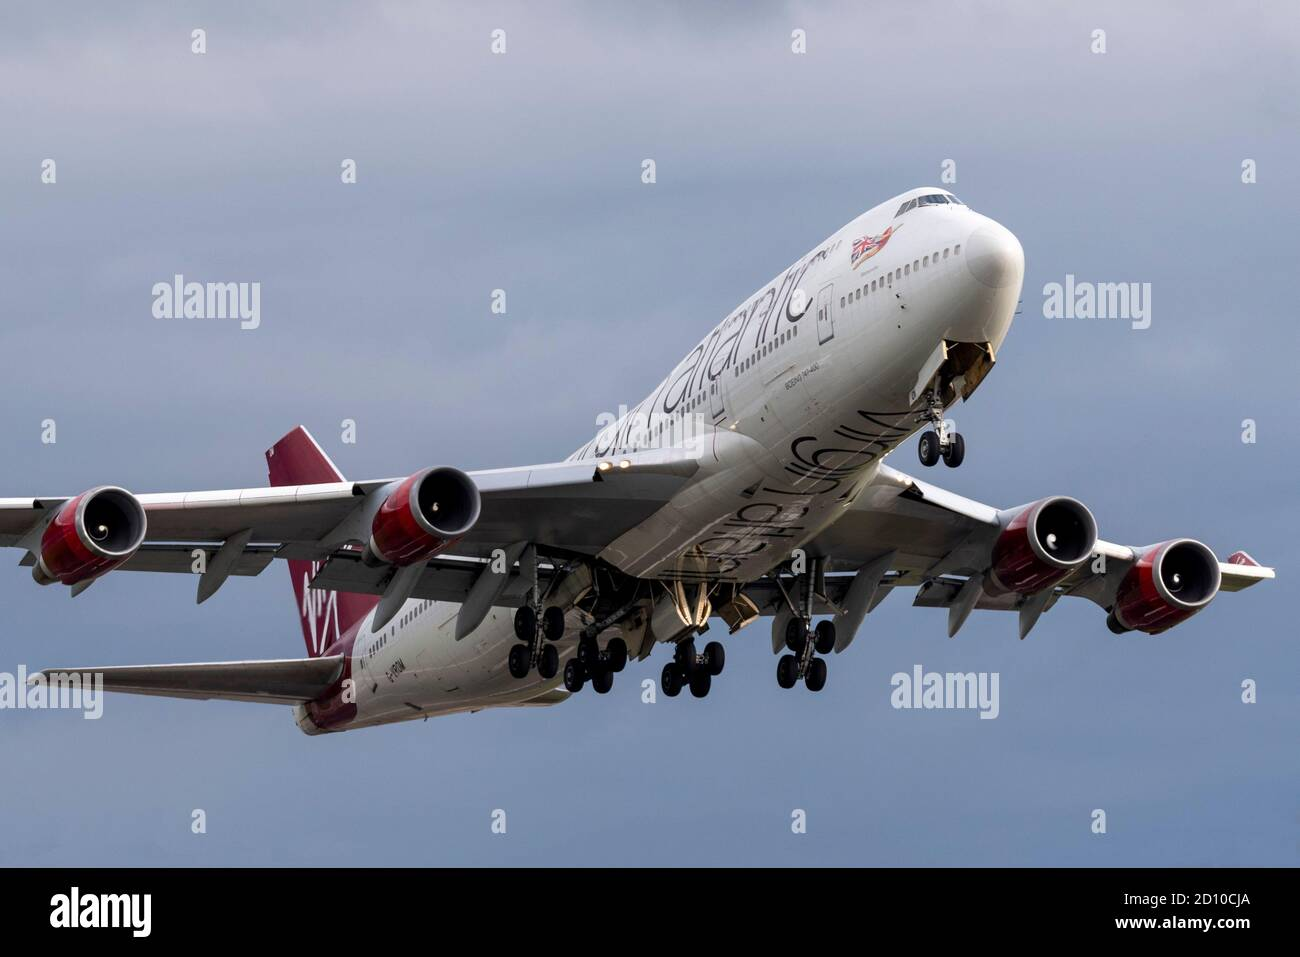 virgin-atlantic-boeing-747-jumbo-jet-plane-taking-off-from-london-heathrow-airport-uk-after-being-stored-premature-retirement-due-to-covid19-sold-2D10CJA.jpg